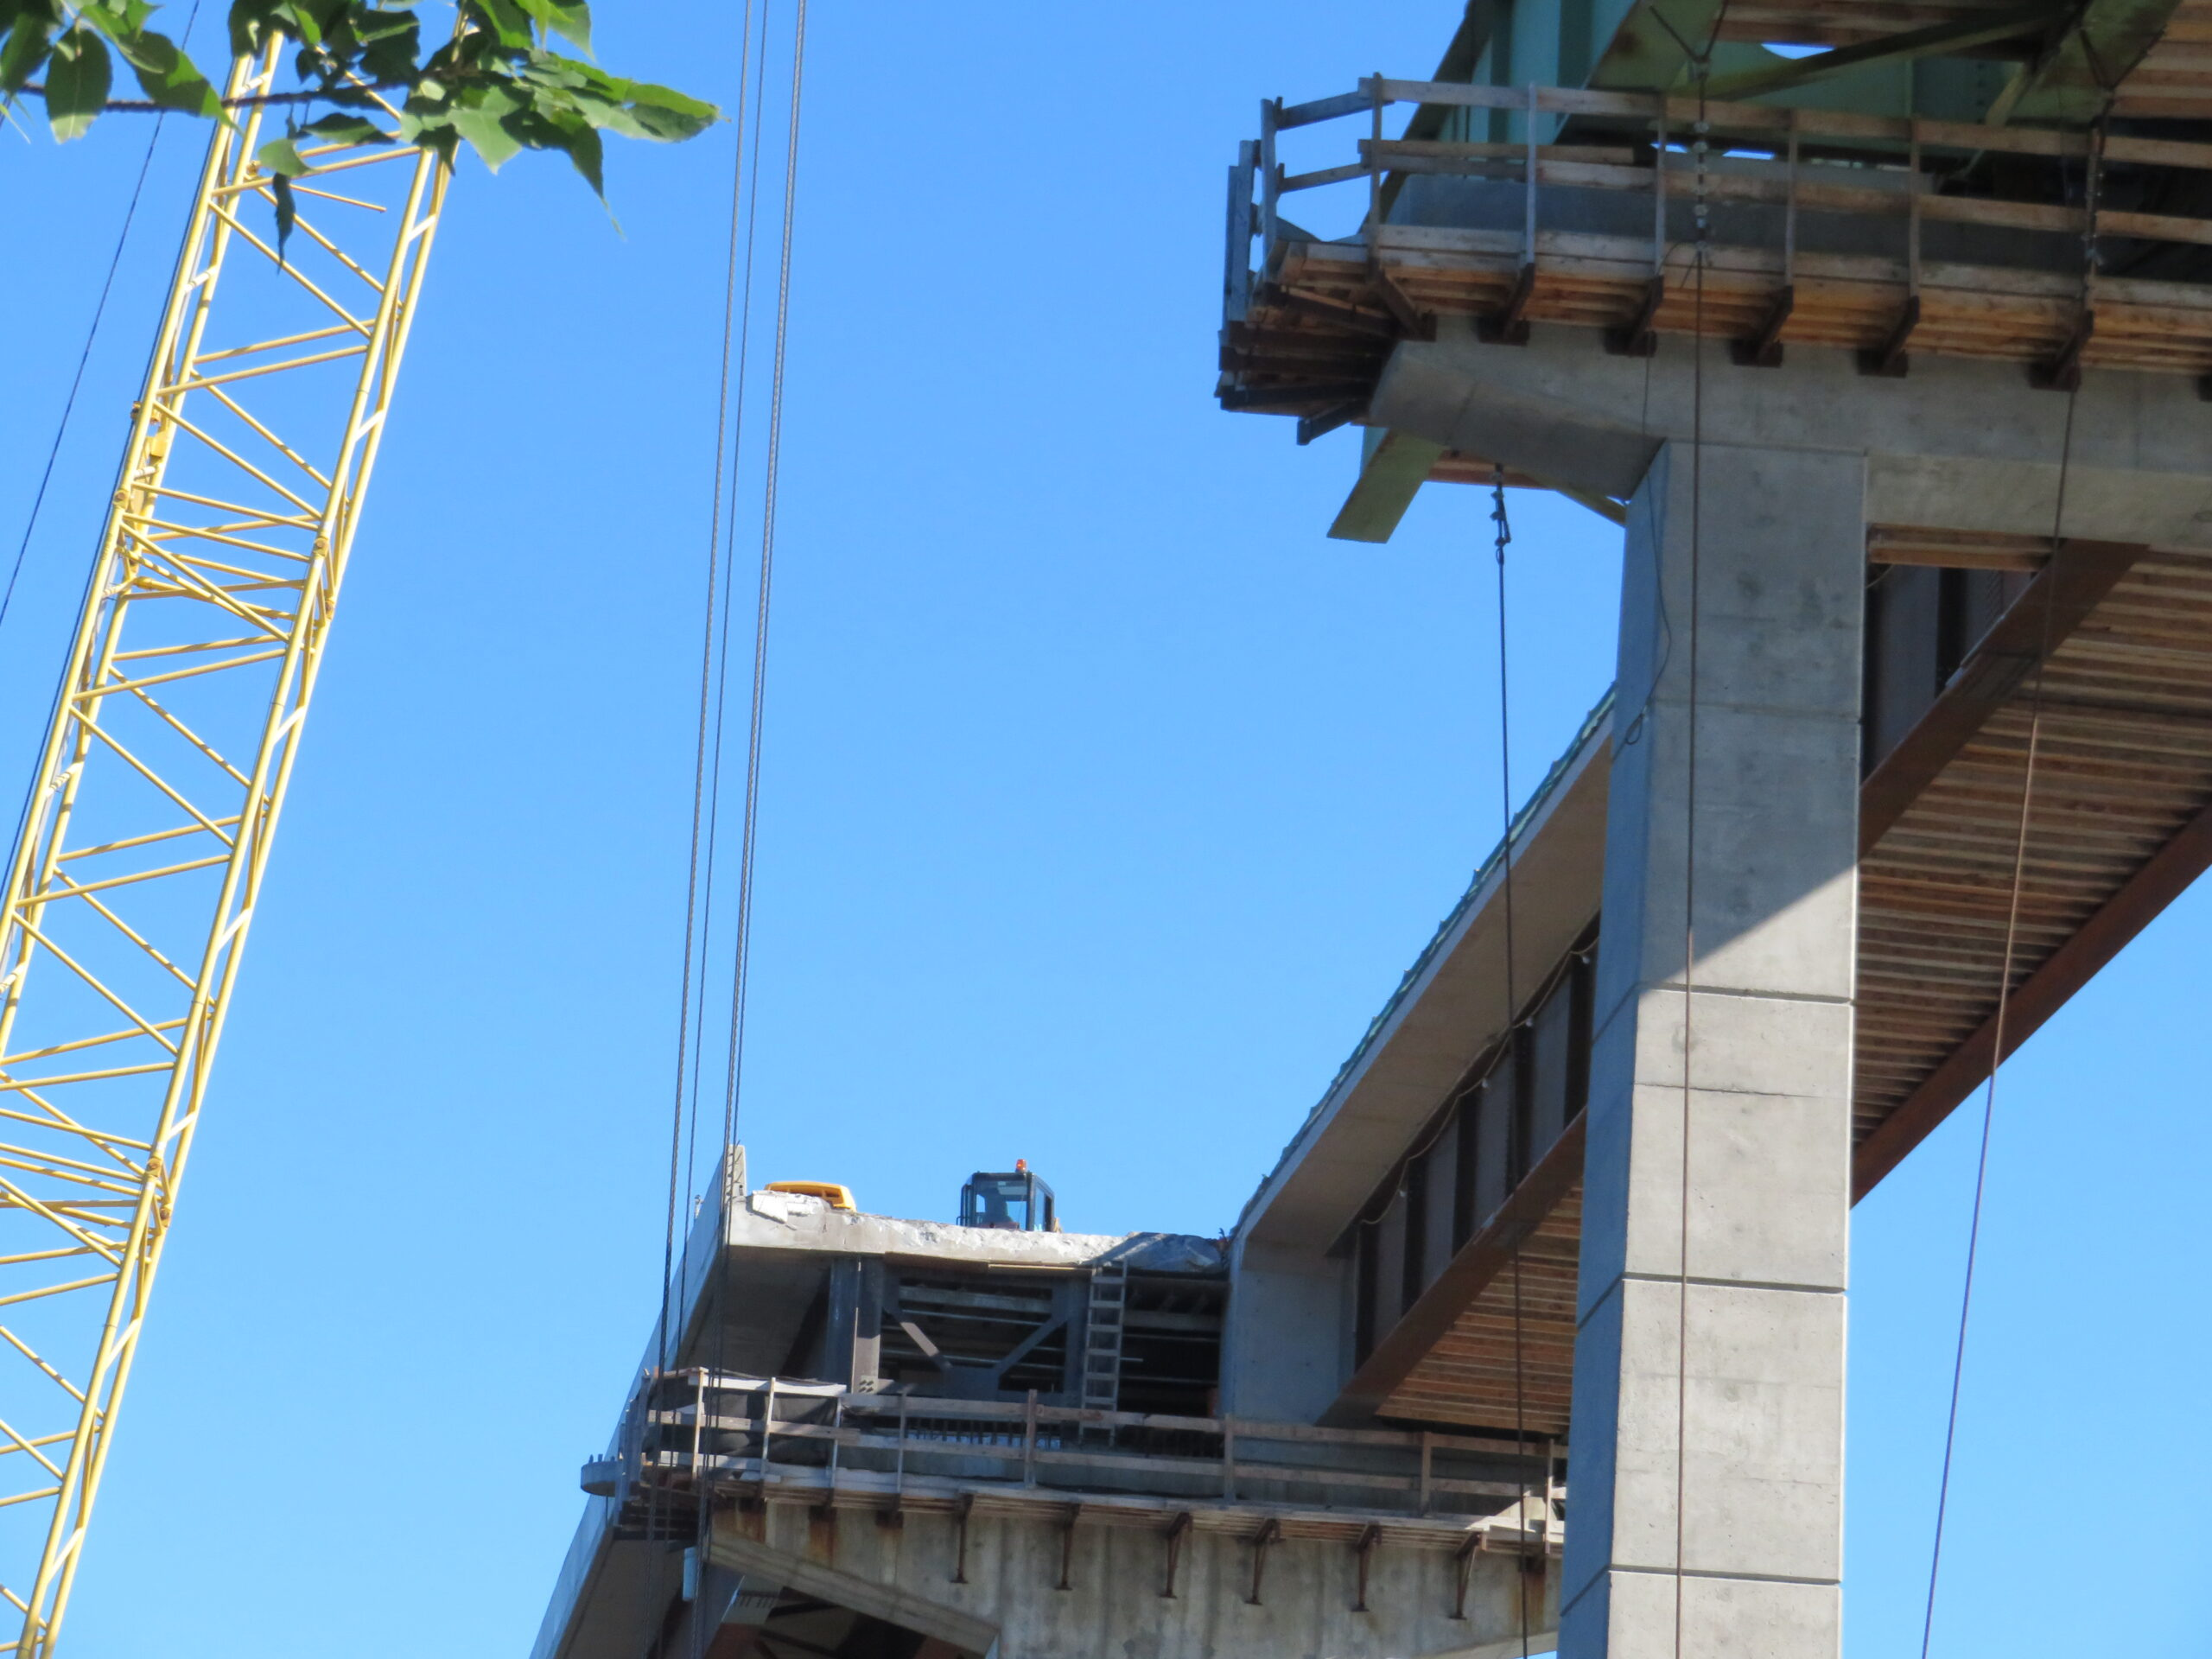 View from below of removed section of girder, piers 11-12